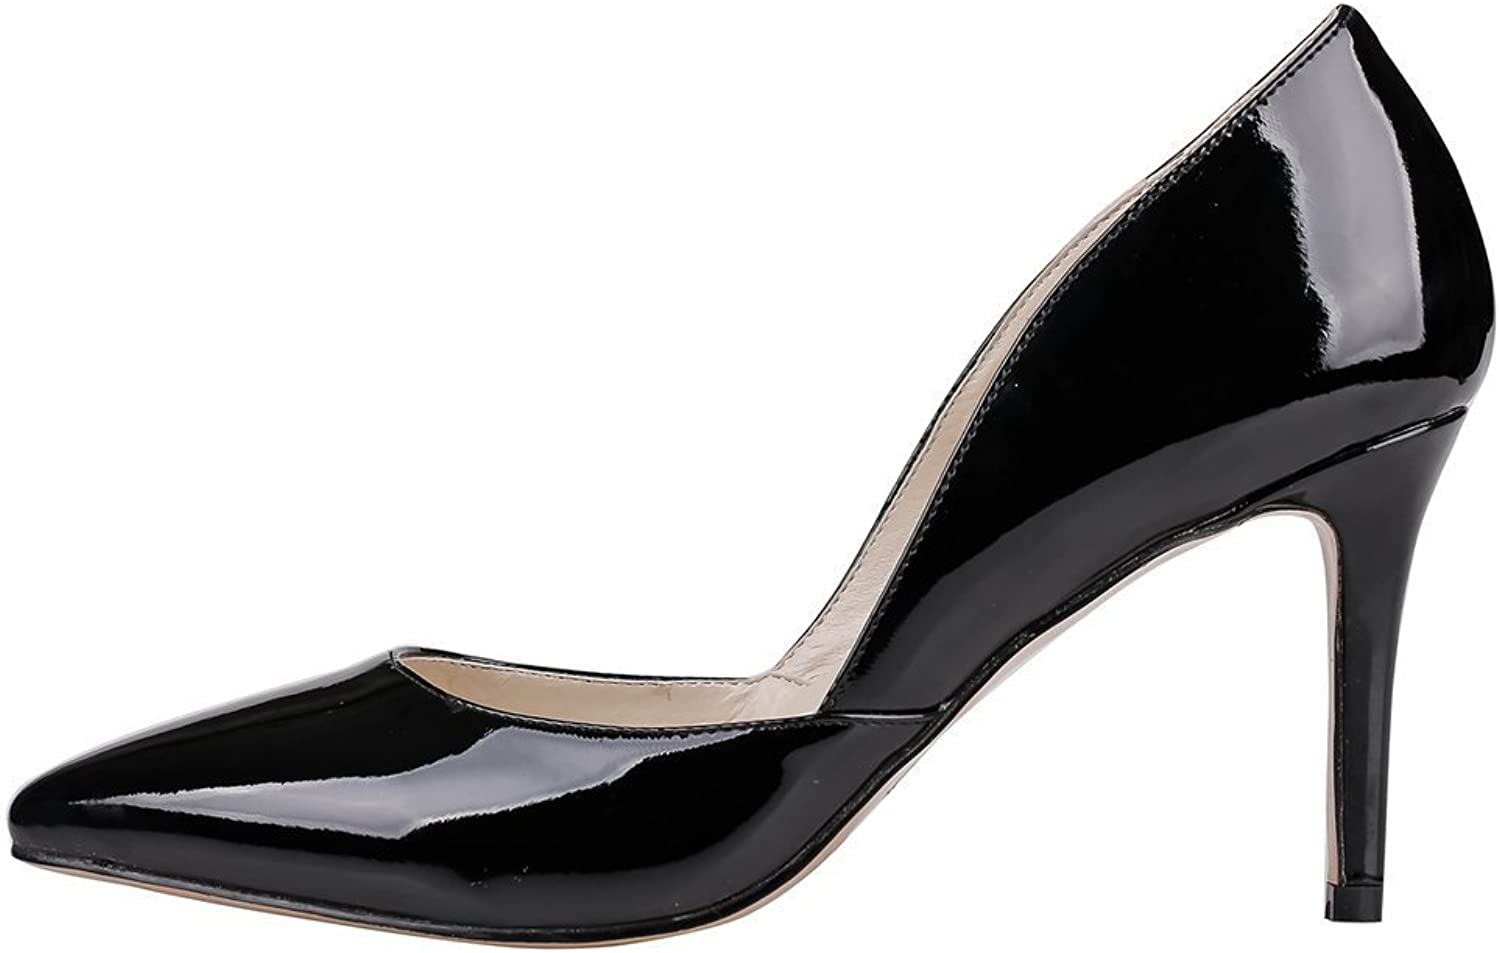 Nansay Women's shoes D'Orsay&Two-Piece Big Size Pumps Ladies shoes Pointed Toe High Heels for Party